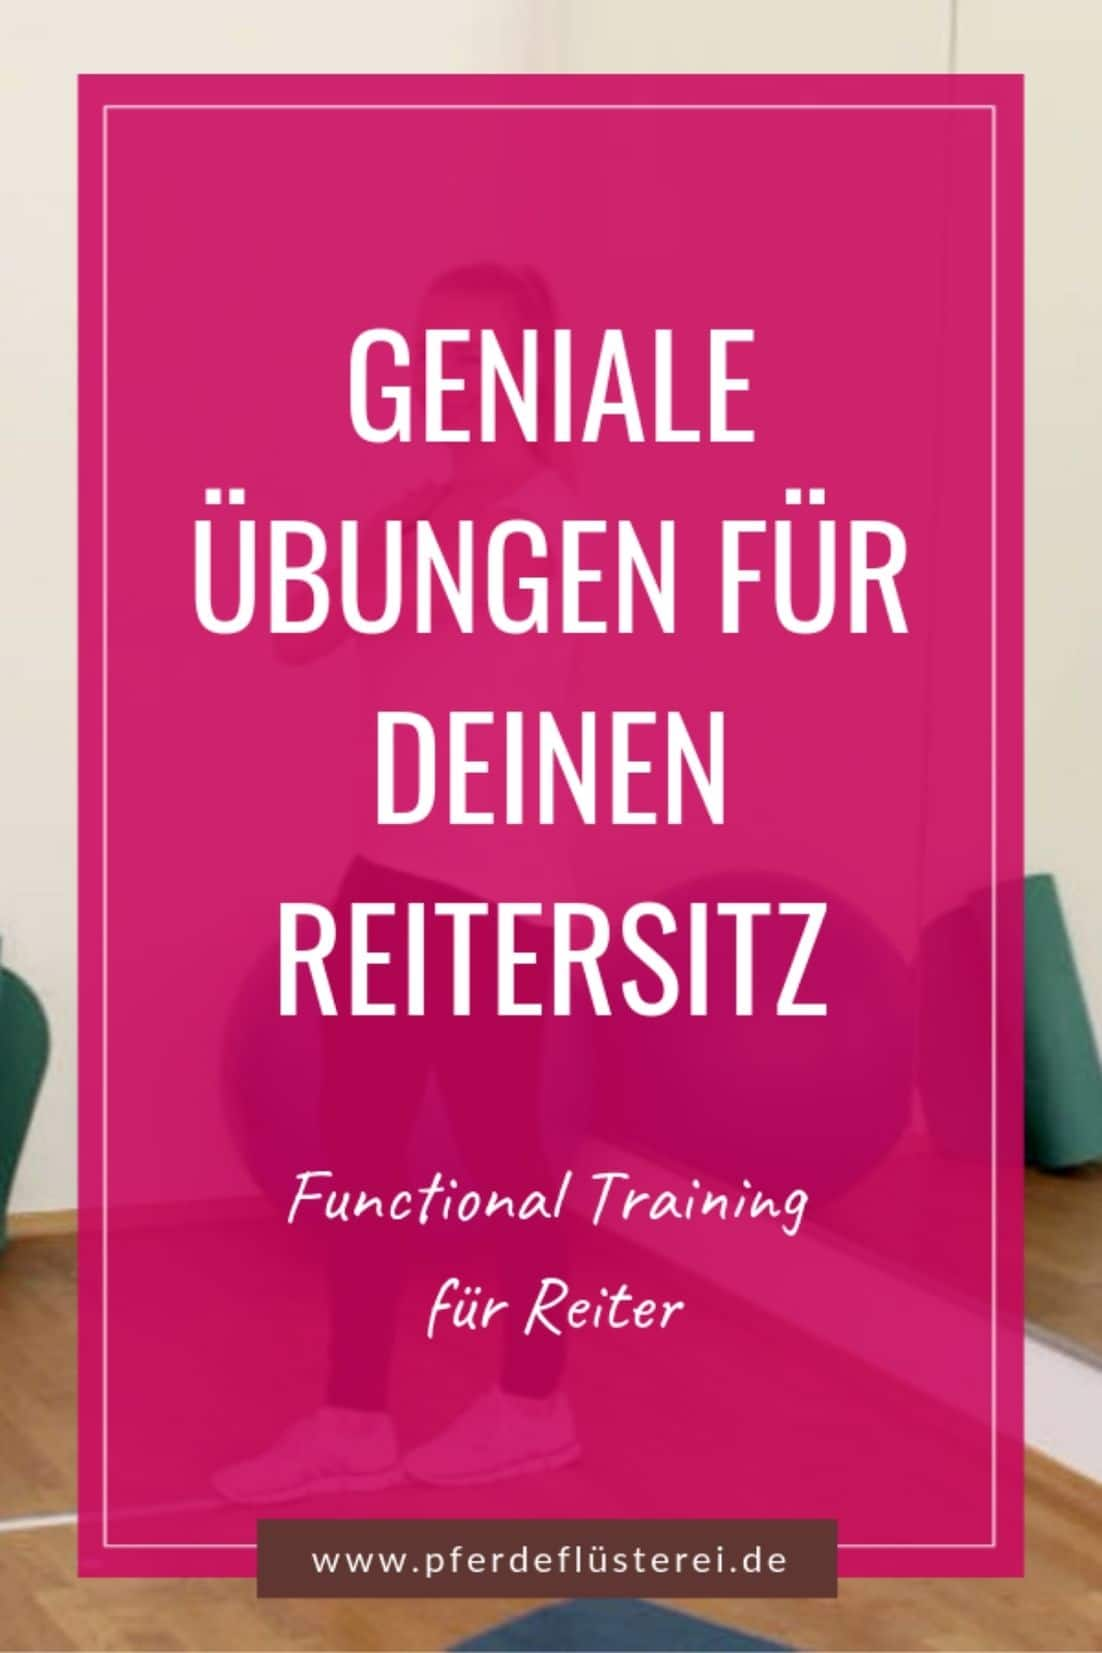 Functional Training - Sale 2